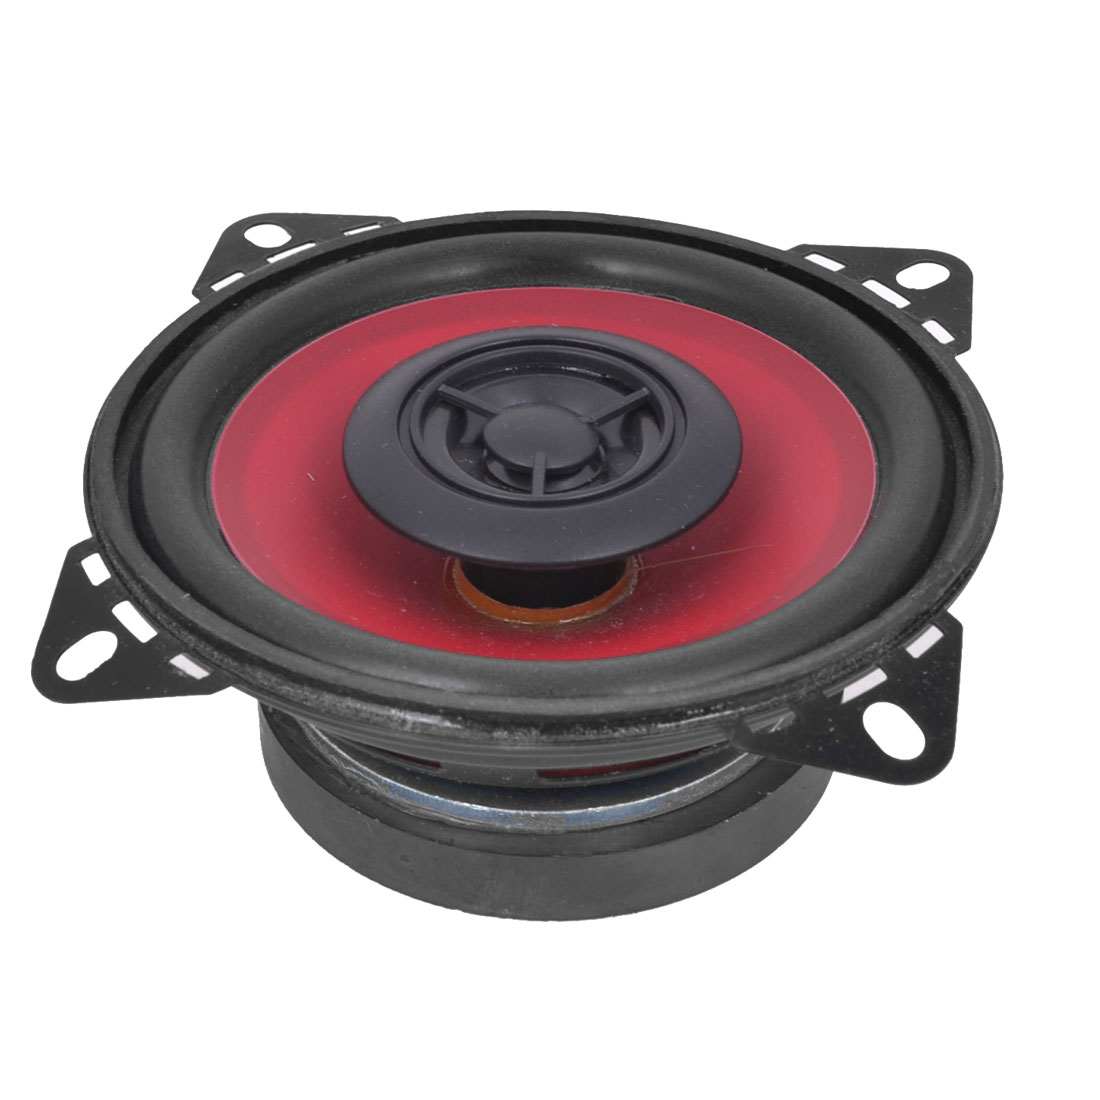 "4"" Diameter Audio 85dB Coaxial Car Speakers 20 Watt Black Red"